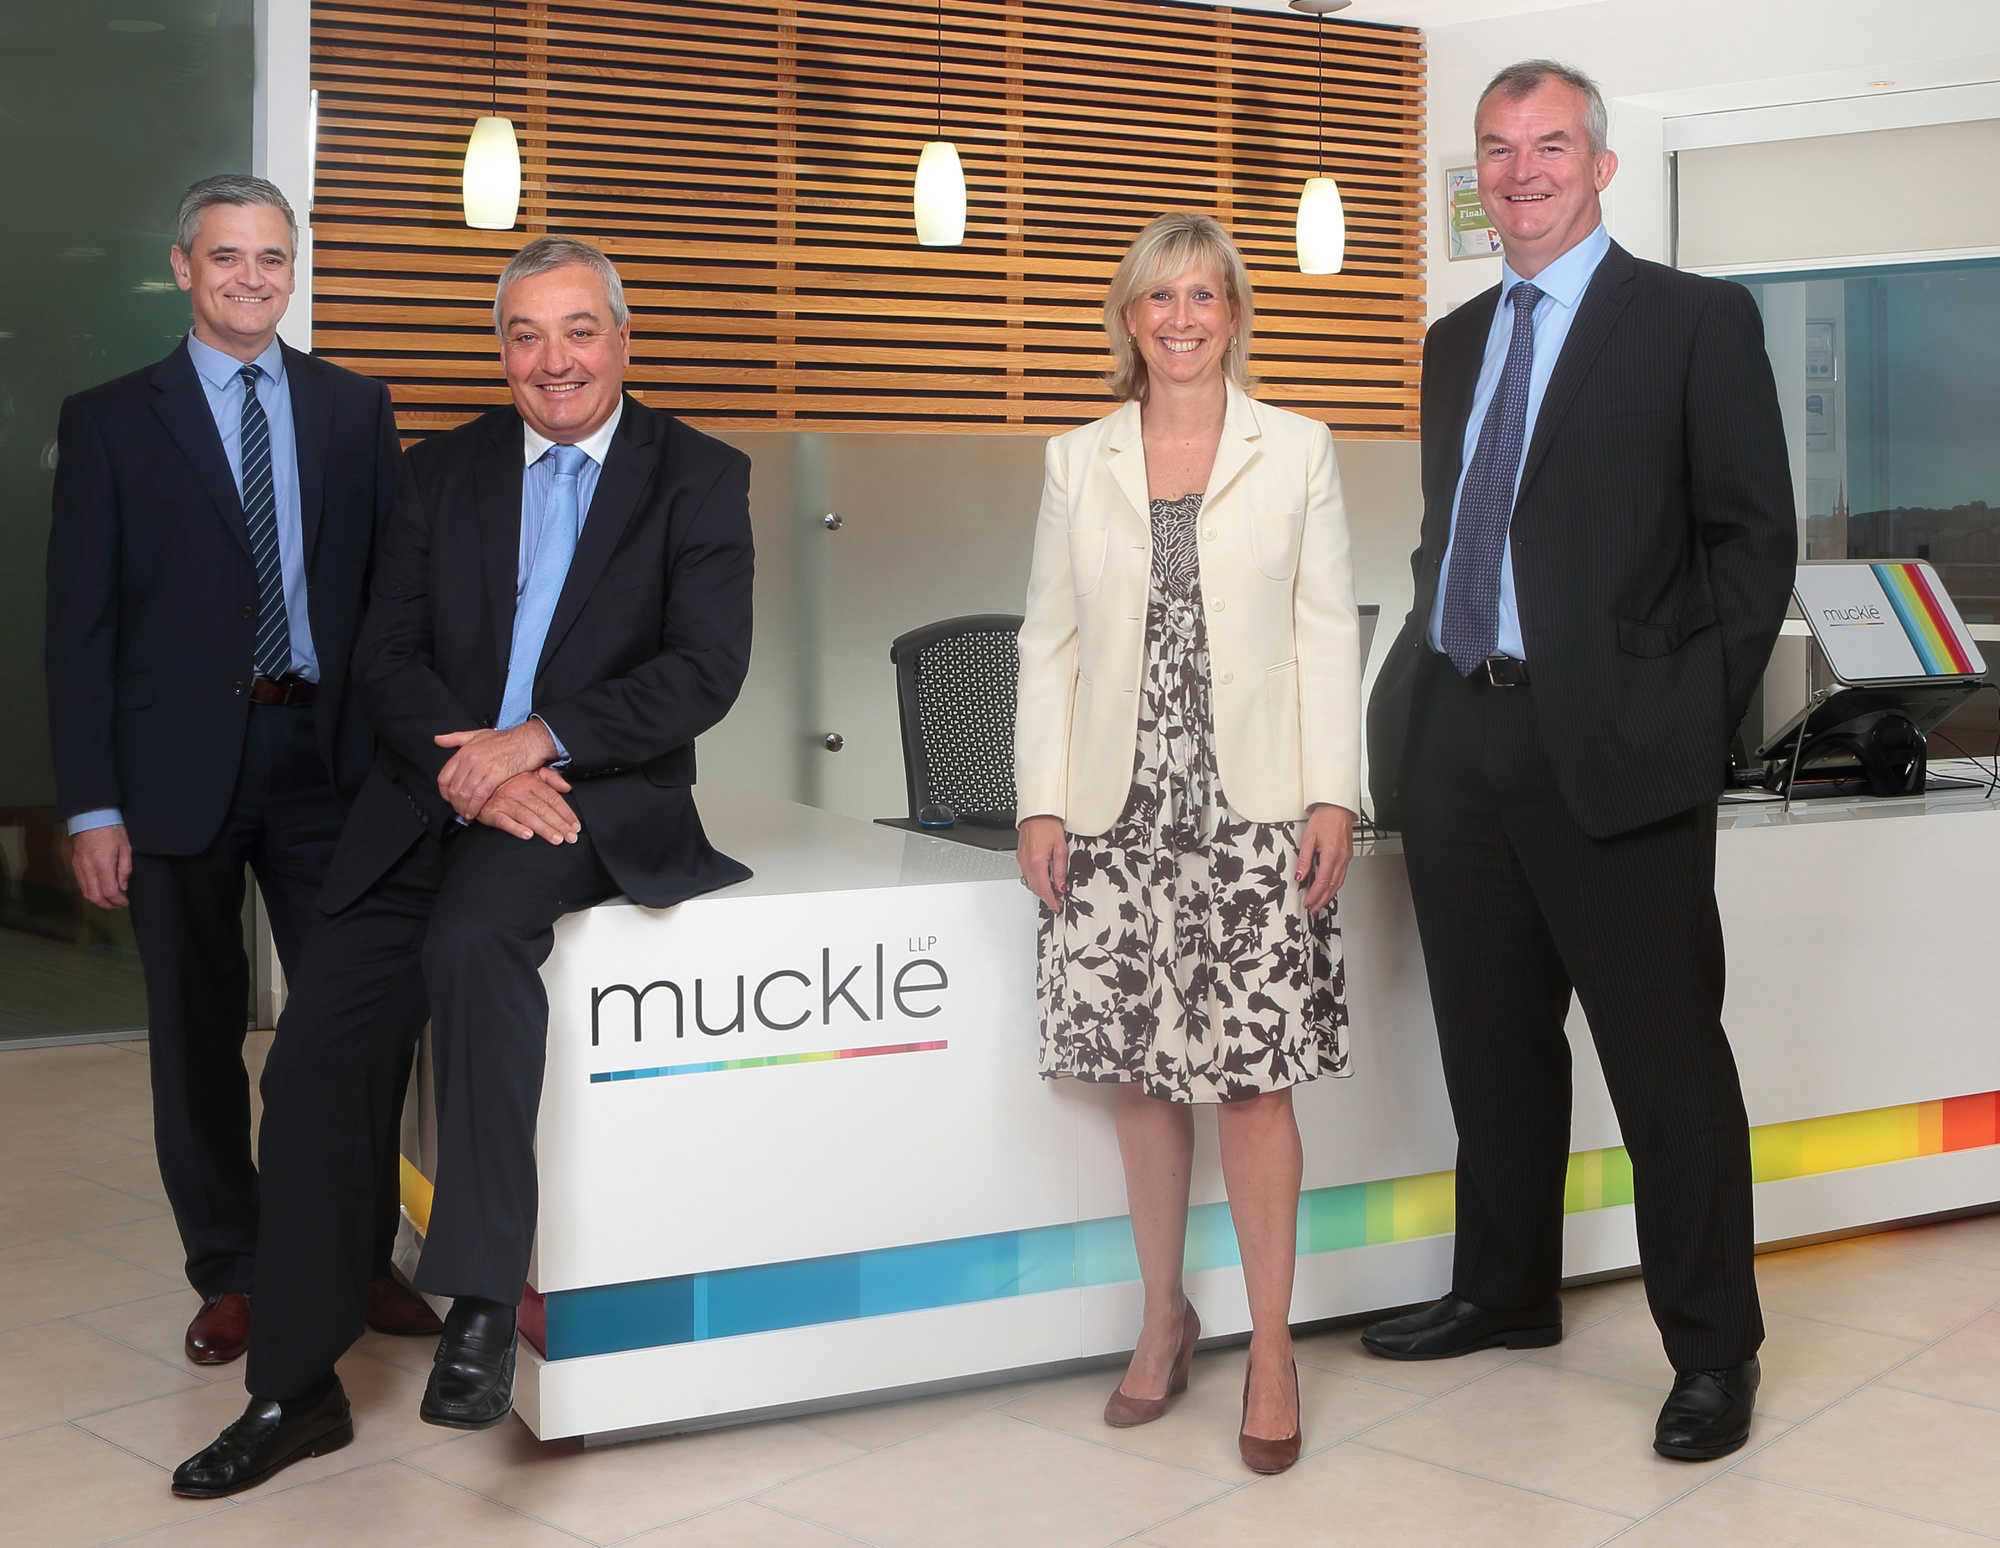 From left to right, Alan Grisedale, Tony McPhillips, Lucilla Waugh and Jonathan Combe